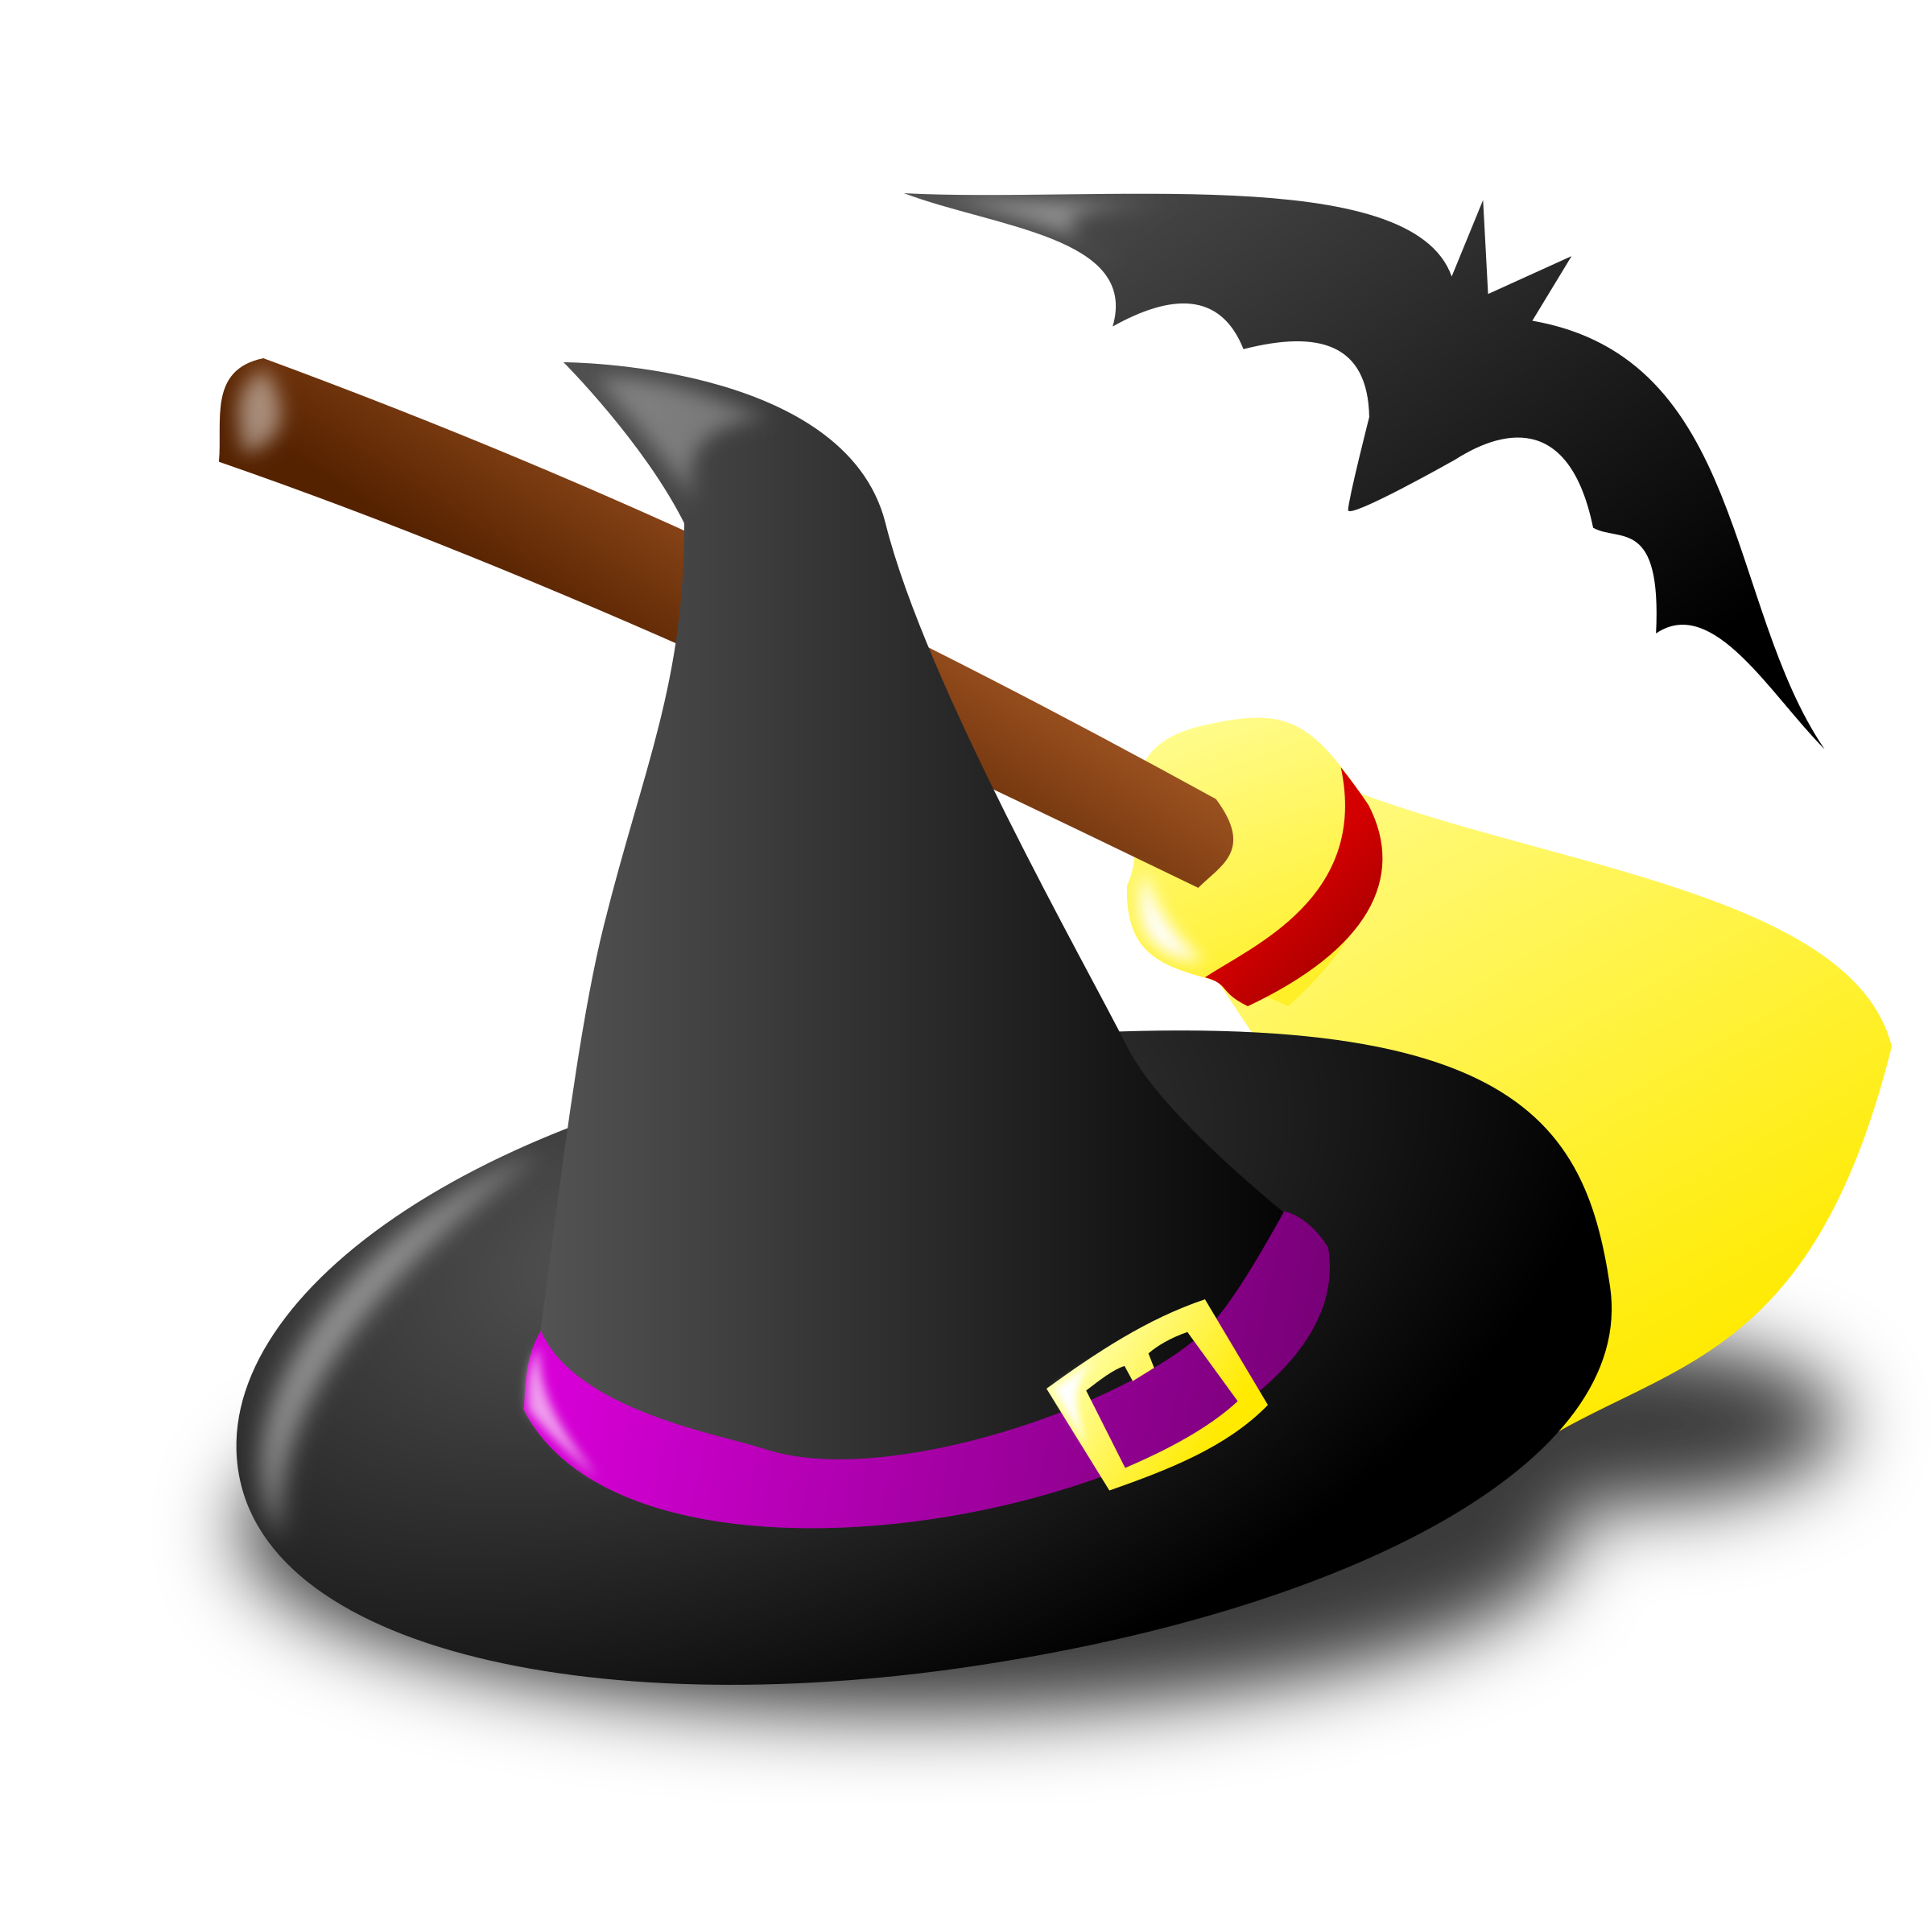 Witch clipart apple. Spooky halloween stickers boo